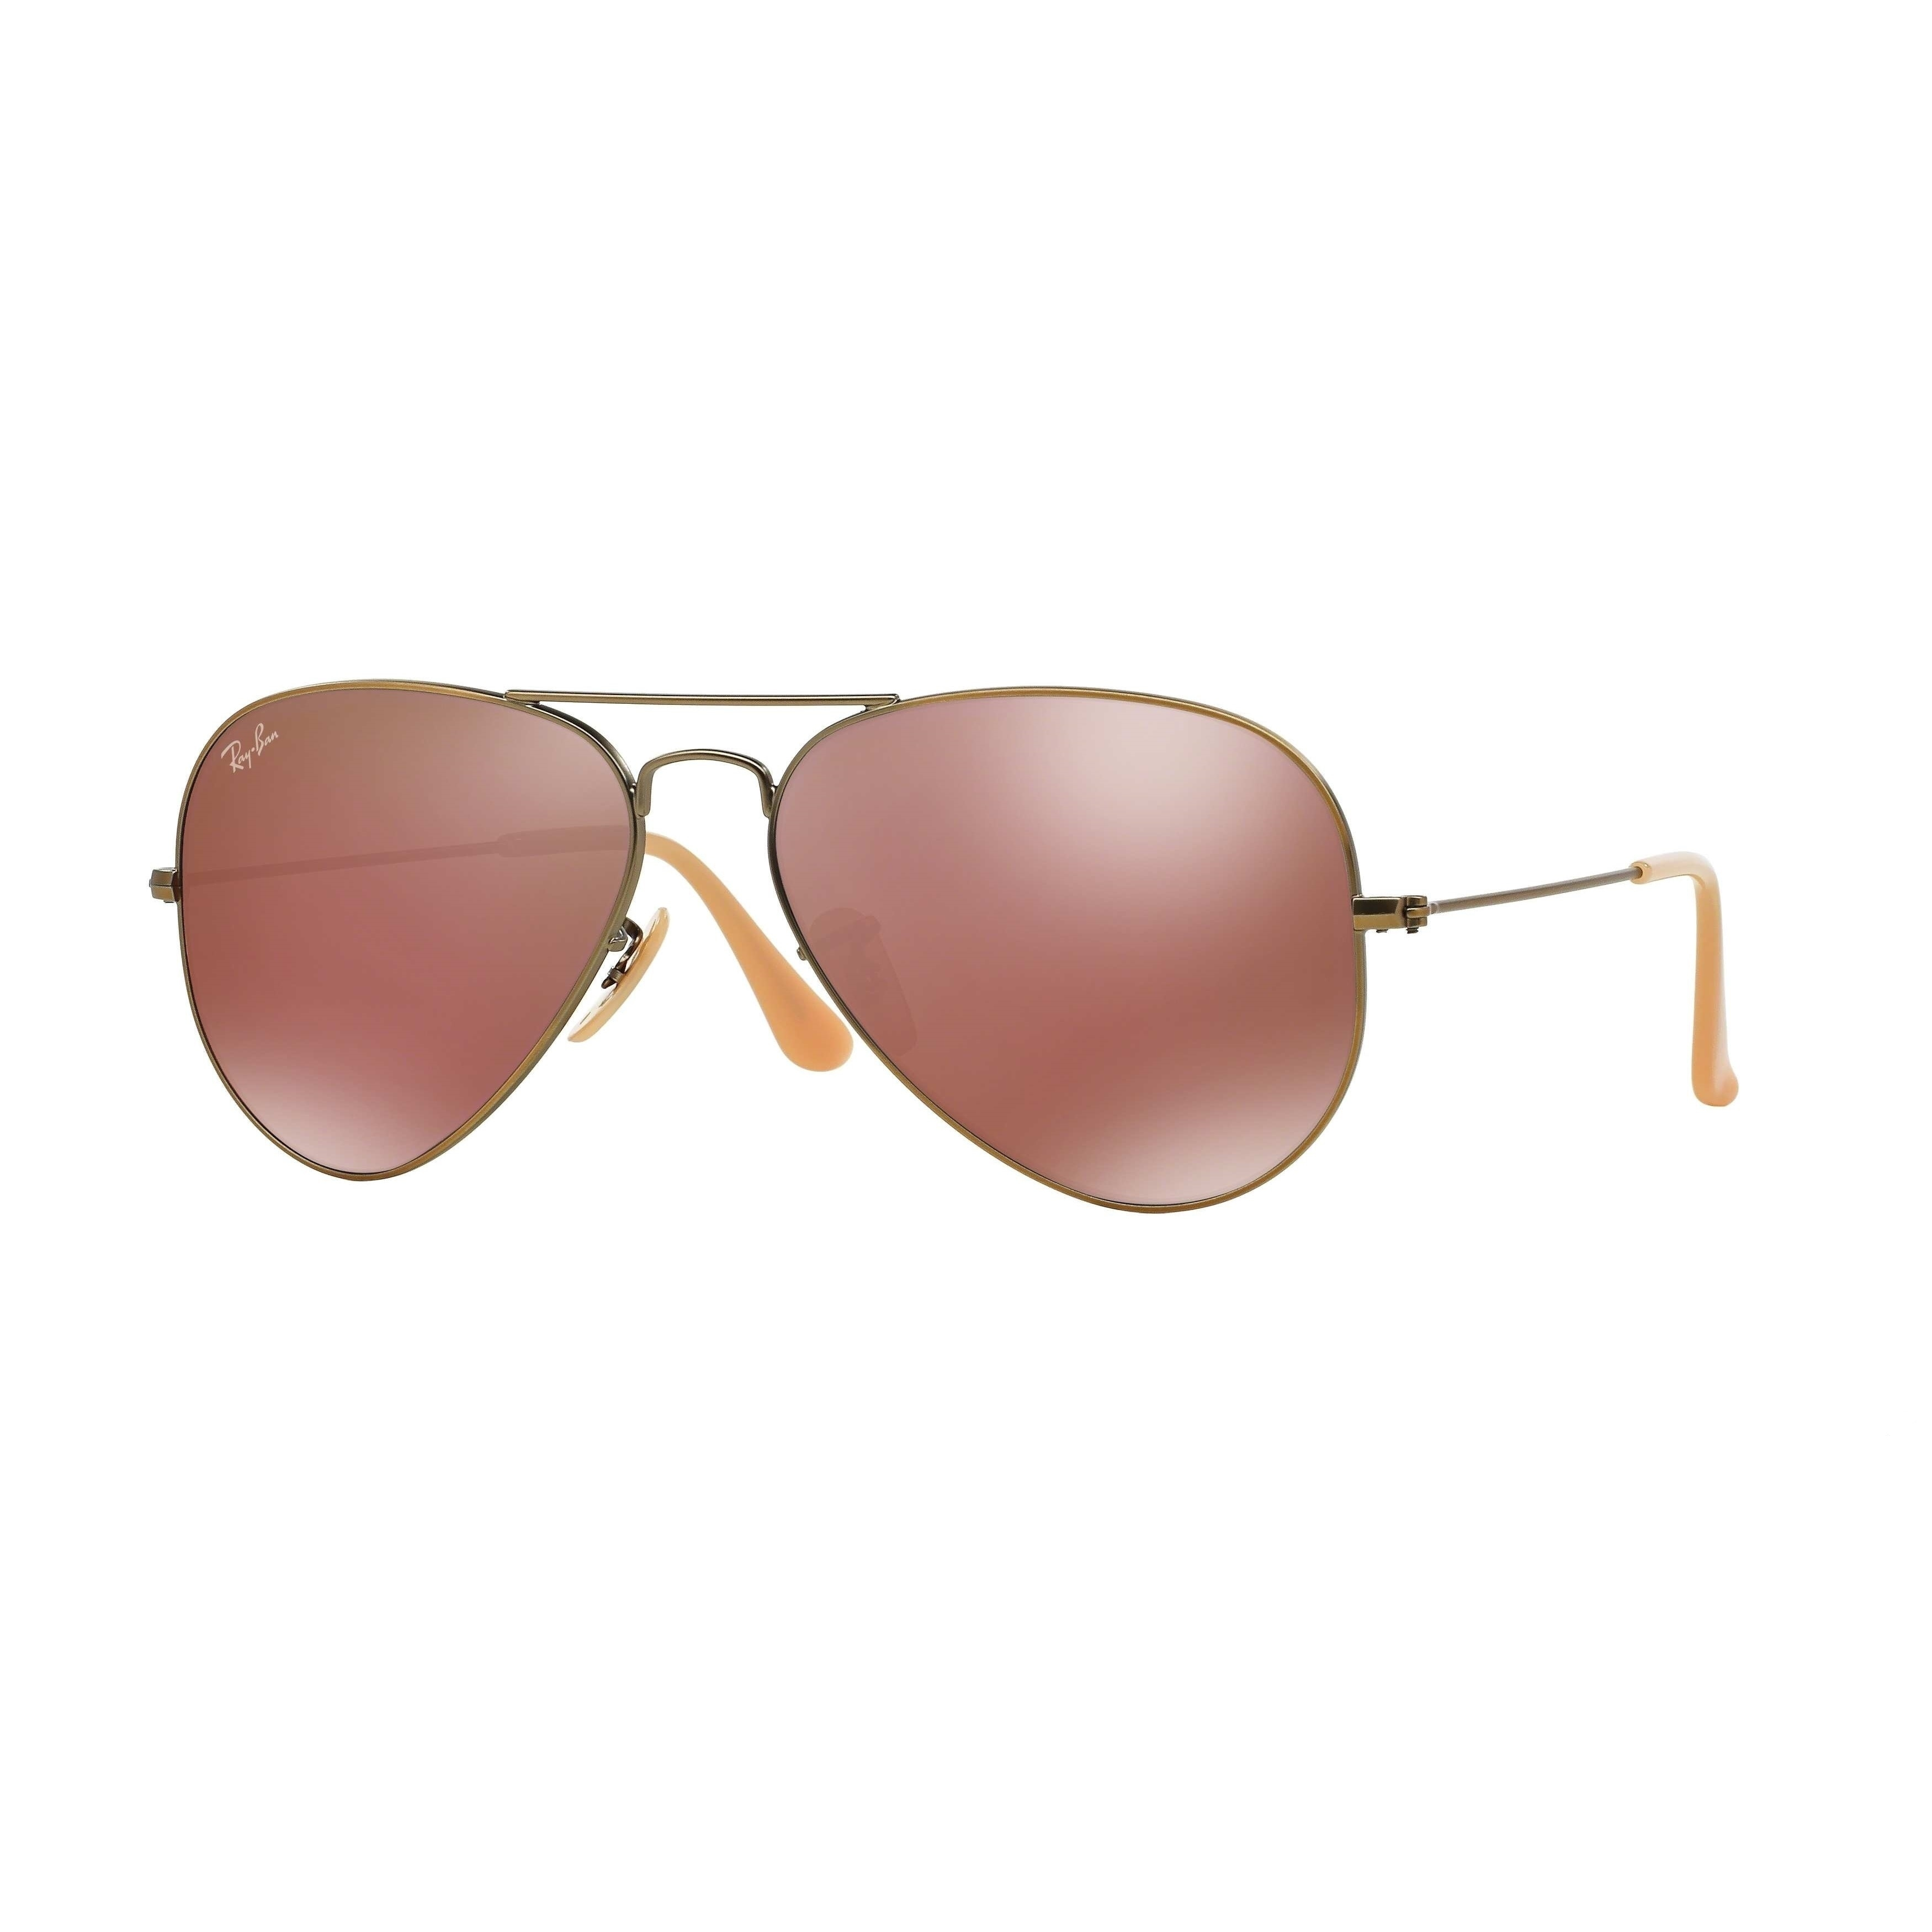 9ec105ea54 Shop Ray-Ban RB3025 167 2K Aviator Flash Lenses Bronze-Copper Frame Red  Mirror 55mm Lens Sunglasses - Free Shipping Today - Overstock - 14442274